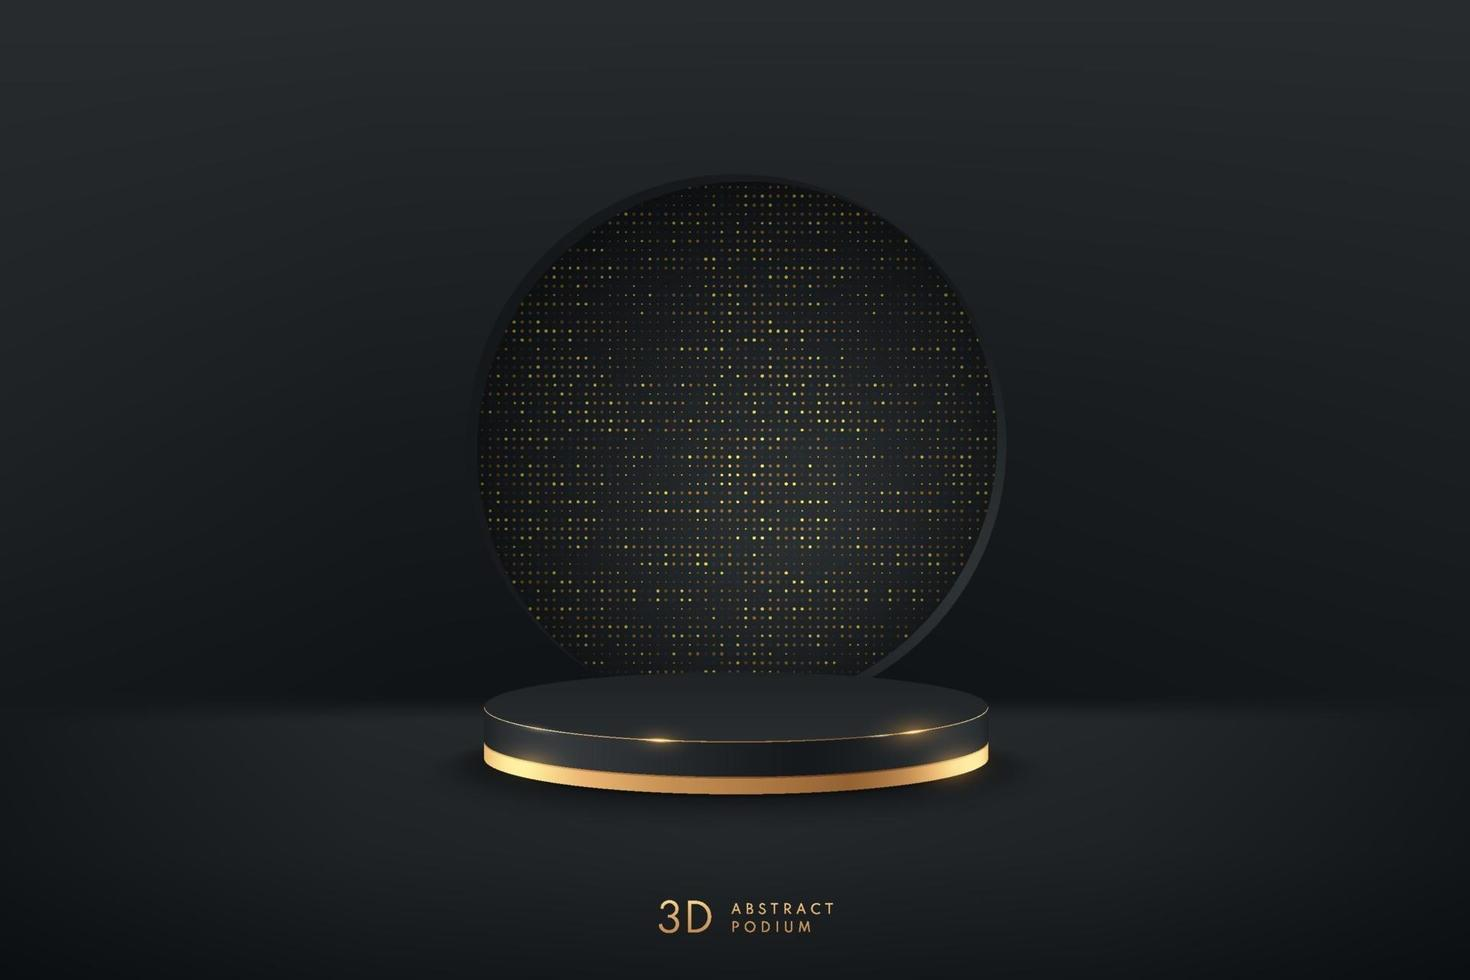 Abstract vector rendering 3d shape for advertising products display presentation. Luxury black and gold cylinder podium with dark empty room and golden glitter texture background. Minimal scene room.